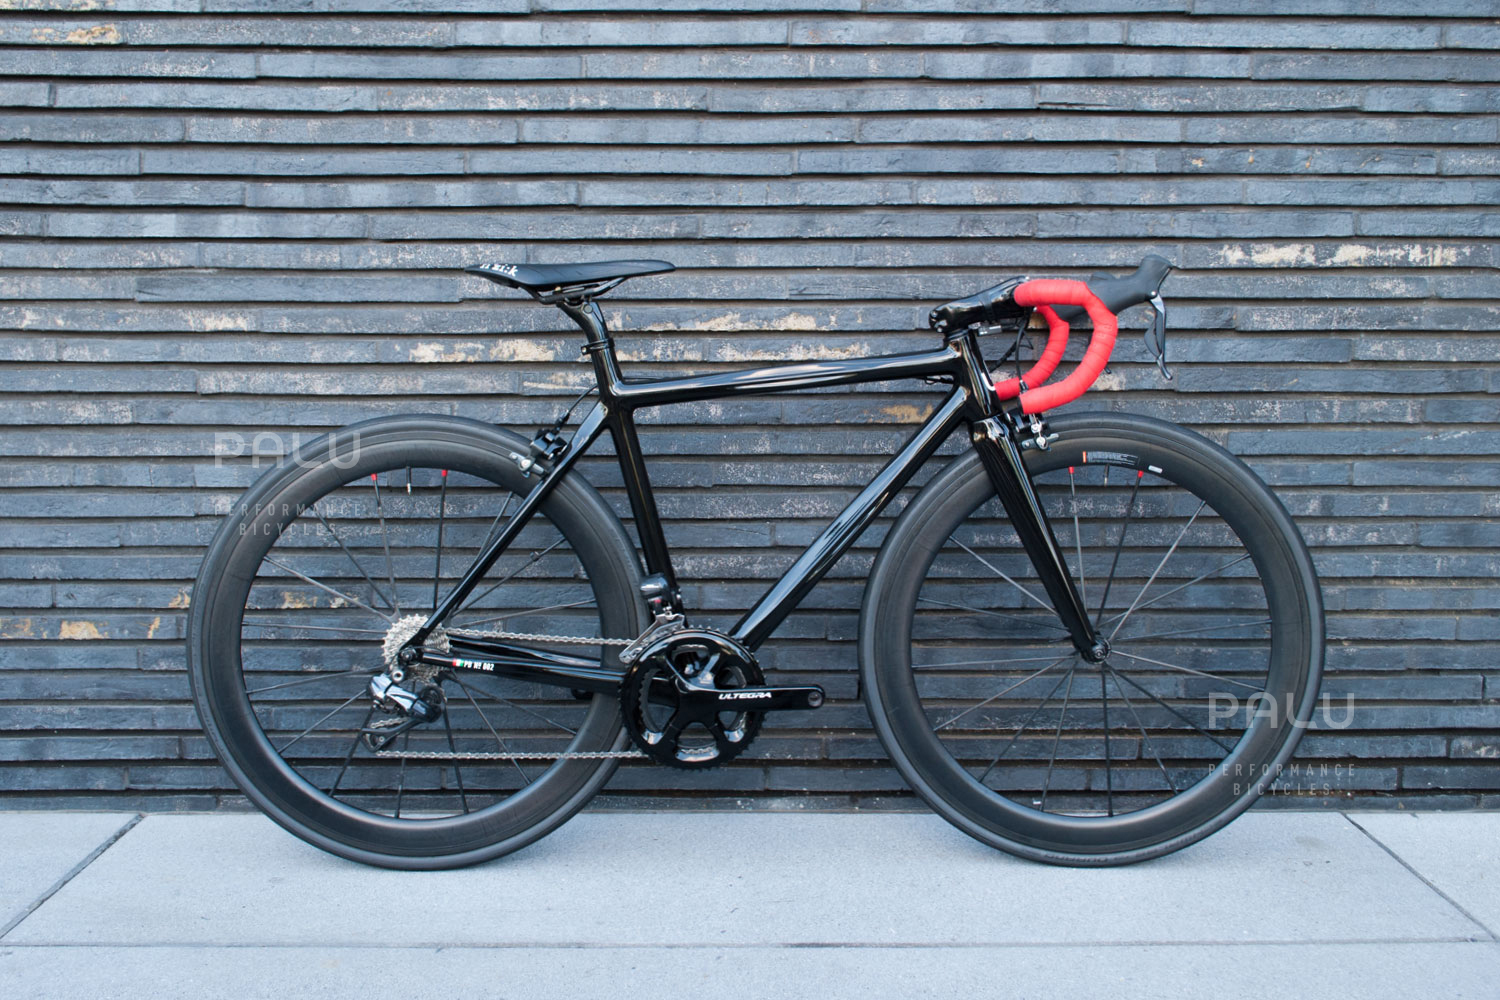 Palu-Pb002-Dedacciai-Carbon-Fibre-3k-Italian-Hand-Made-In-Italy-Custom-Hand-Tailored-Frame-Shimano-Ultegra-Di2-Groupset-Equinox-Wheelset-Carbon-Fibre-Rims-Spokes-Fizik-Arione-Braided-Saddle-London-black-01.jpg